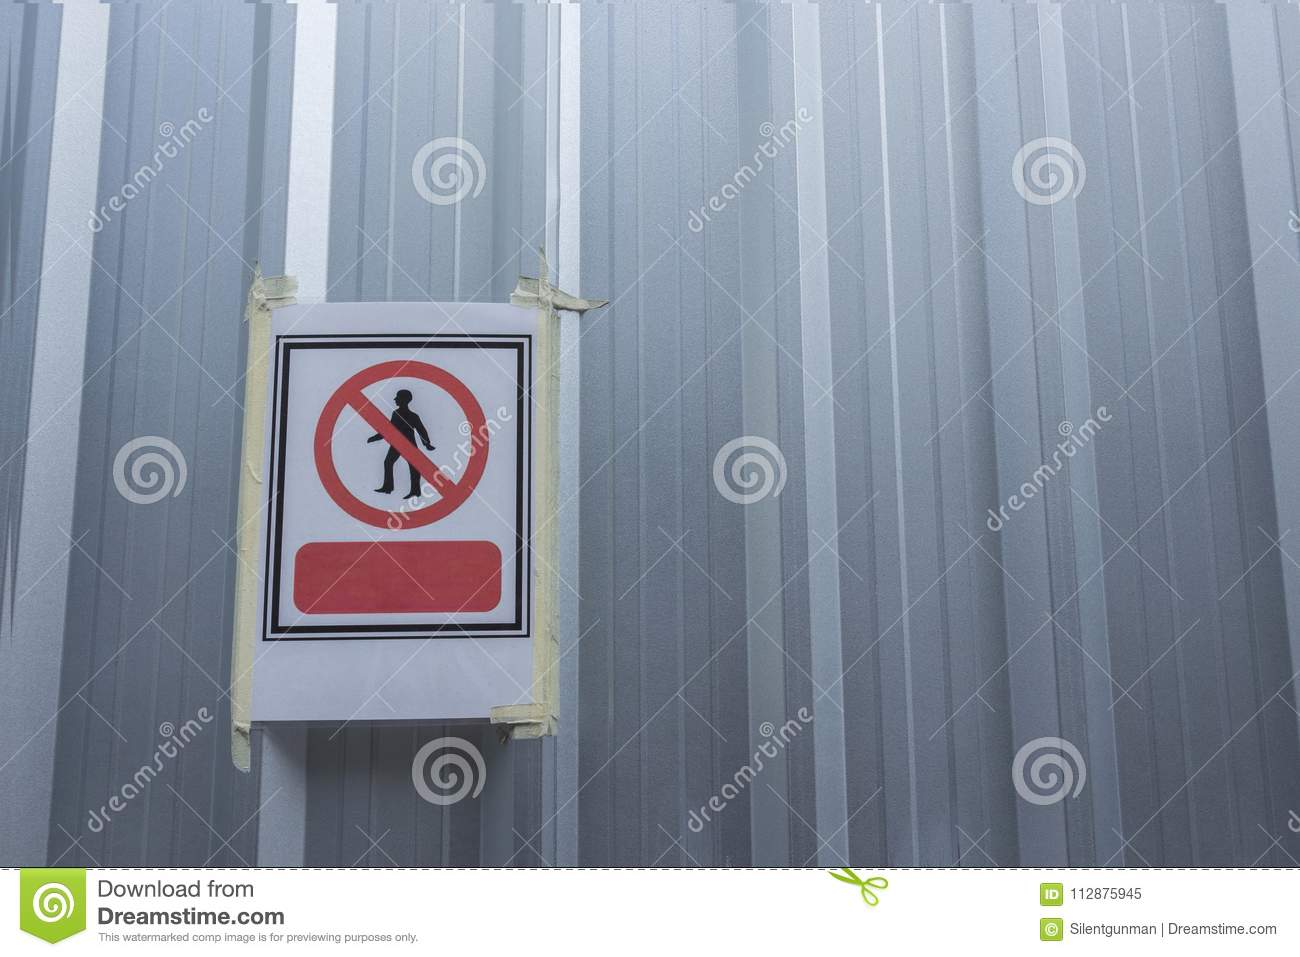 no entry sign sheet on site wall stock image image of corrugated